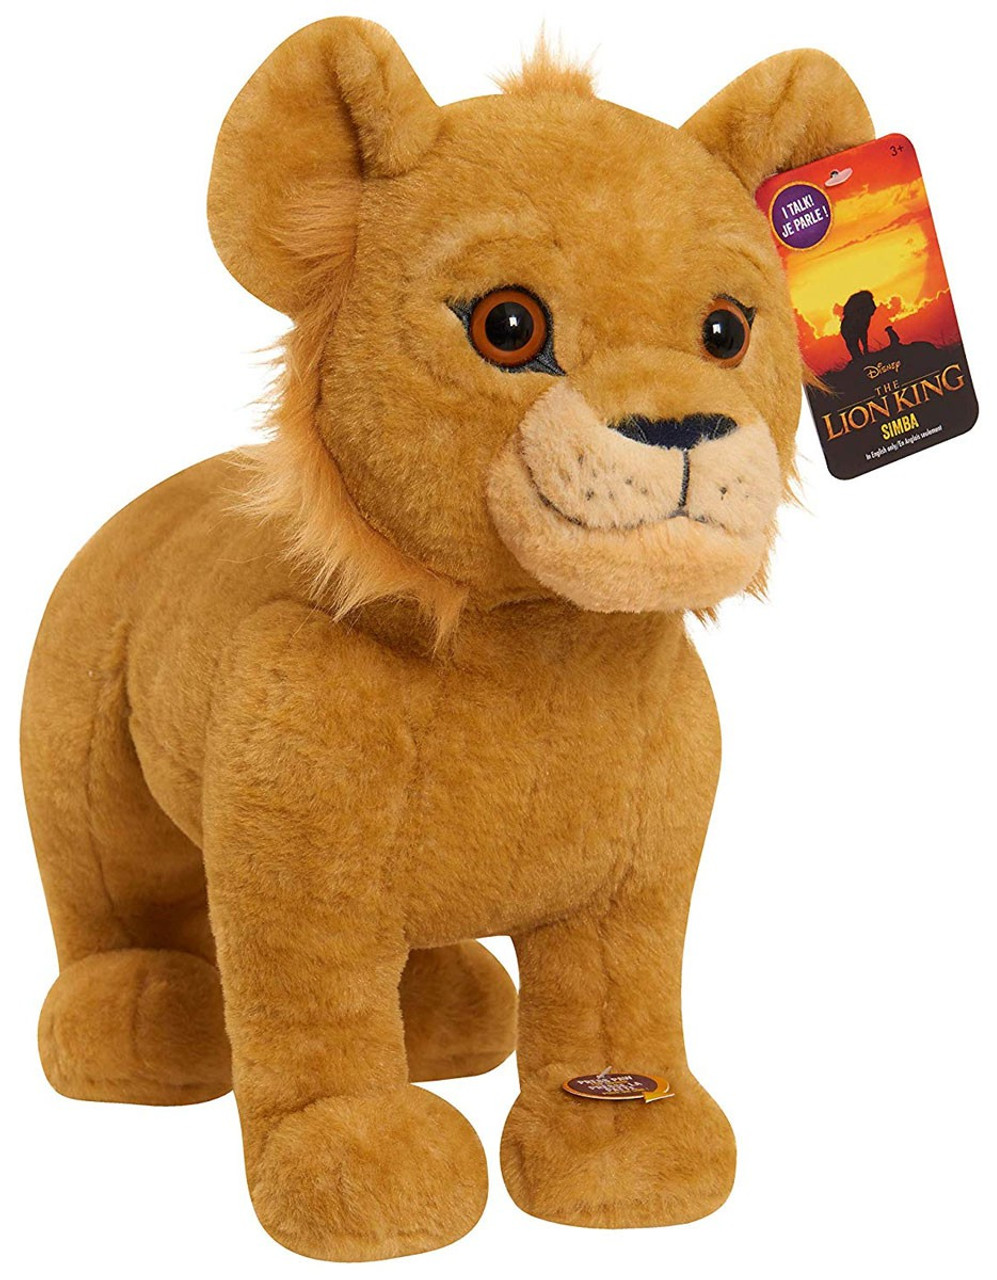 Disney The Lion King 2019 Simba 14 Inch Plush With Sound